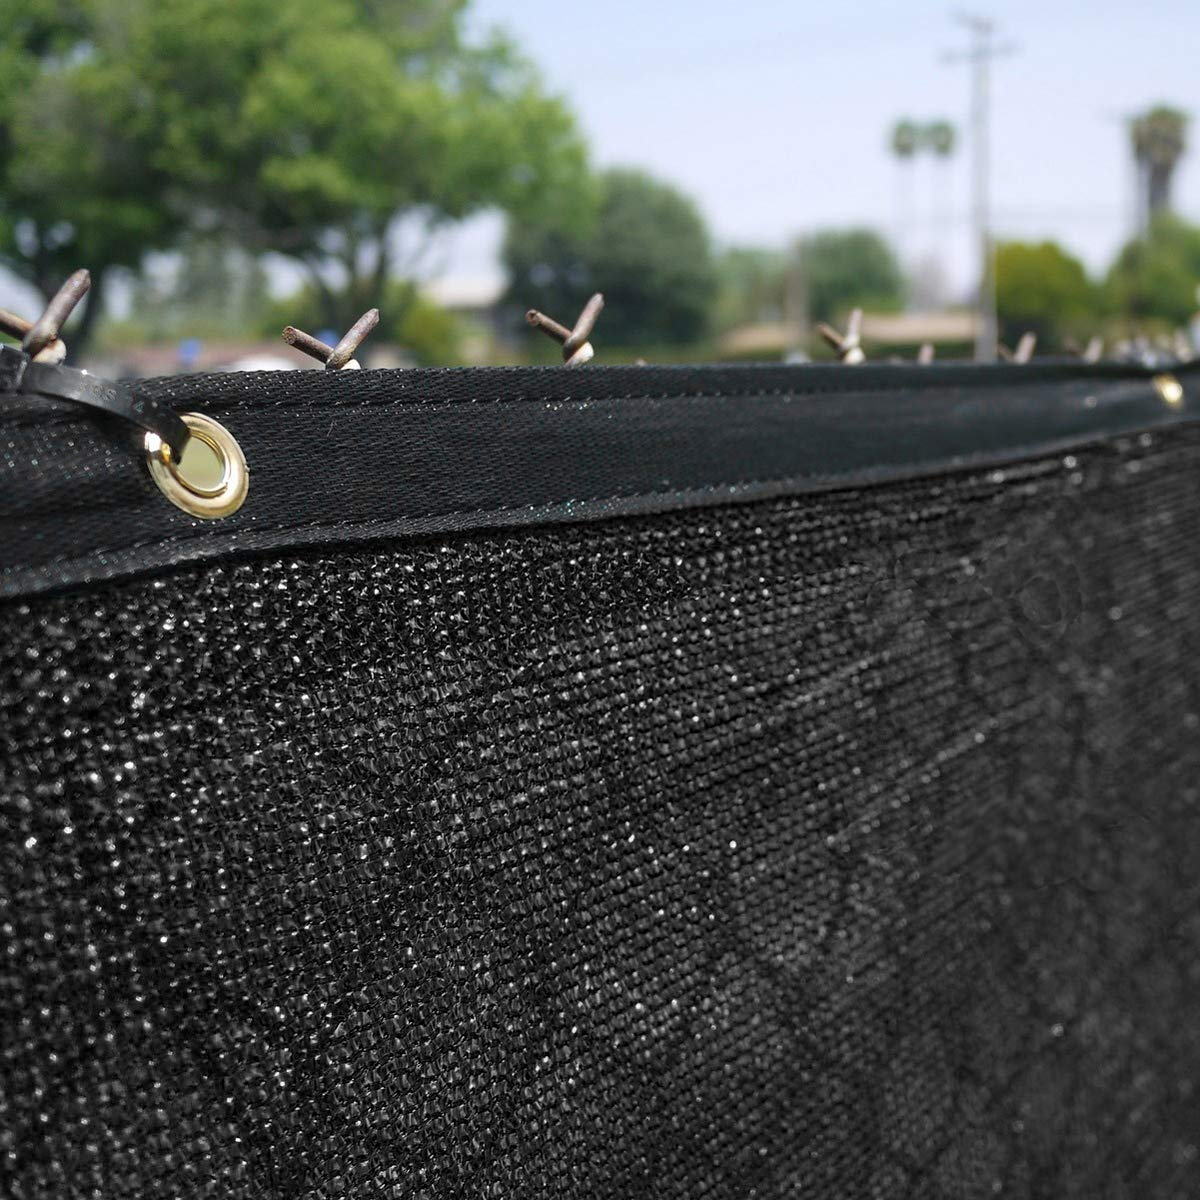 Clevr 6' x 50' Wind Privacy Screen Fence, Commercial Grade Fabric Mesh with Durable Grommets, Black (Set of 4-200' Long) | 3 Year Limited Warranty 140GSM